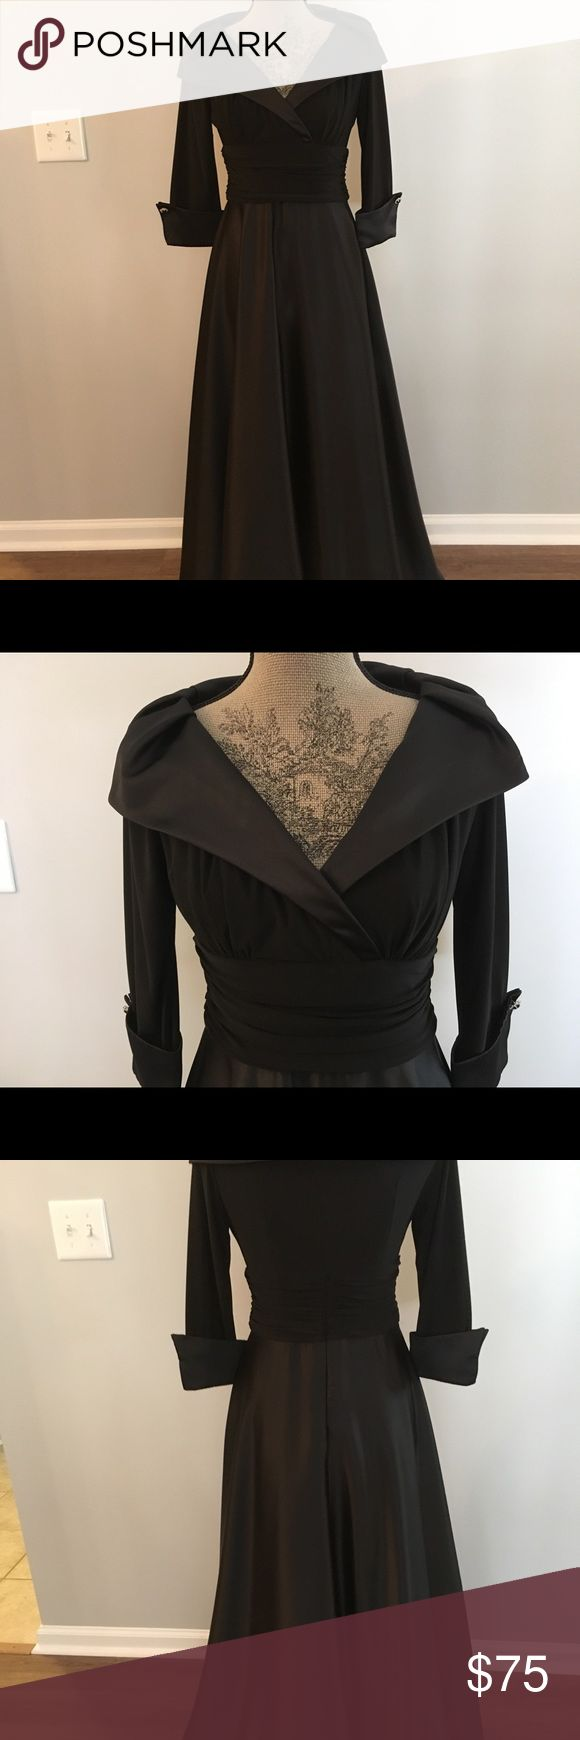 Black full length formal dress with 3/4 sleeves. Full length black formal dress has 3/4 sleeves and a wide collar. Skirt is slightly flared. Worn once as mother-of-the-groom. Hem was professionally altered for a petite with heels. Length should work for most petites with appropriate shoes. Dry clean. Eliza J Dresses Wedding